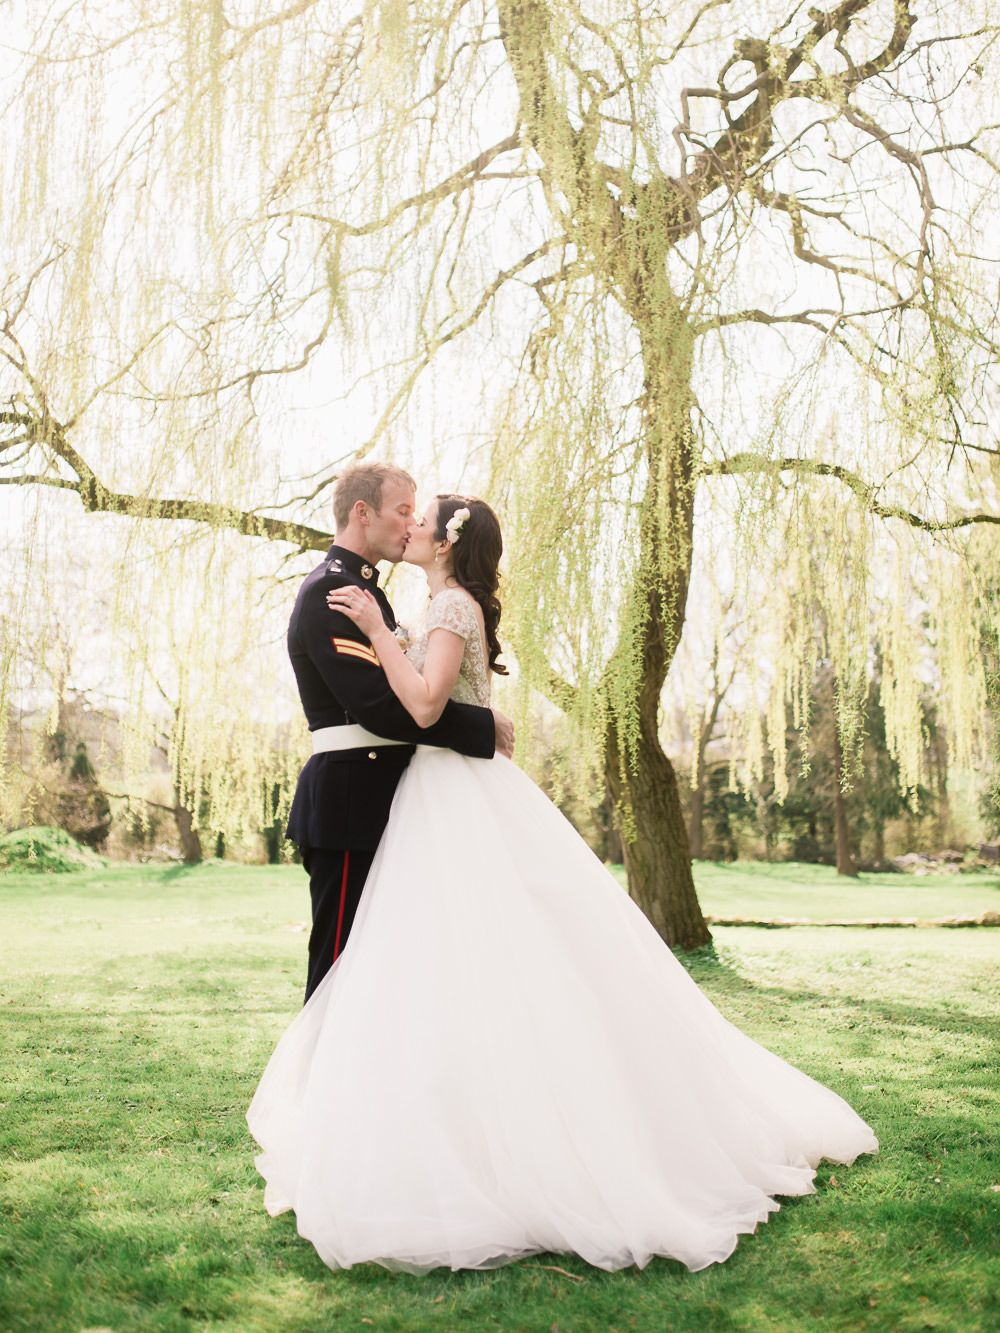 Cheap wedding dresses for military brides  Allure Bridal gown for a Classic Spring Wedding at Eastington Park